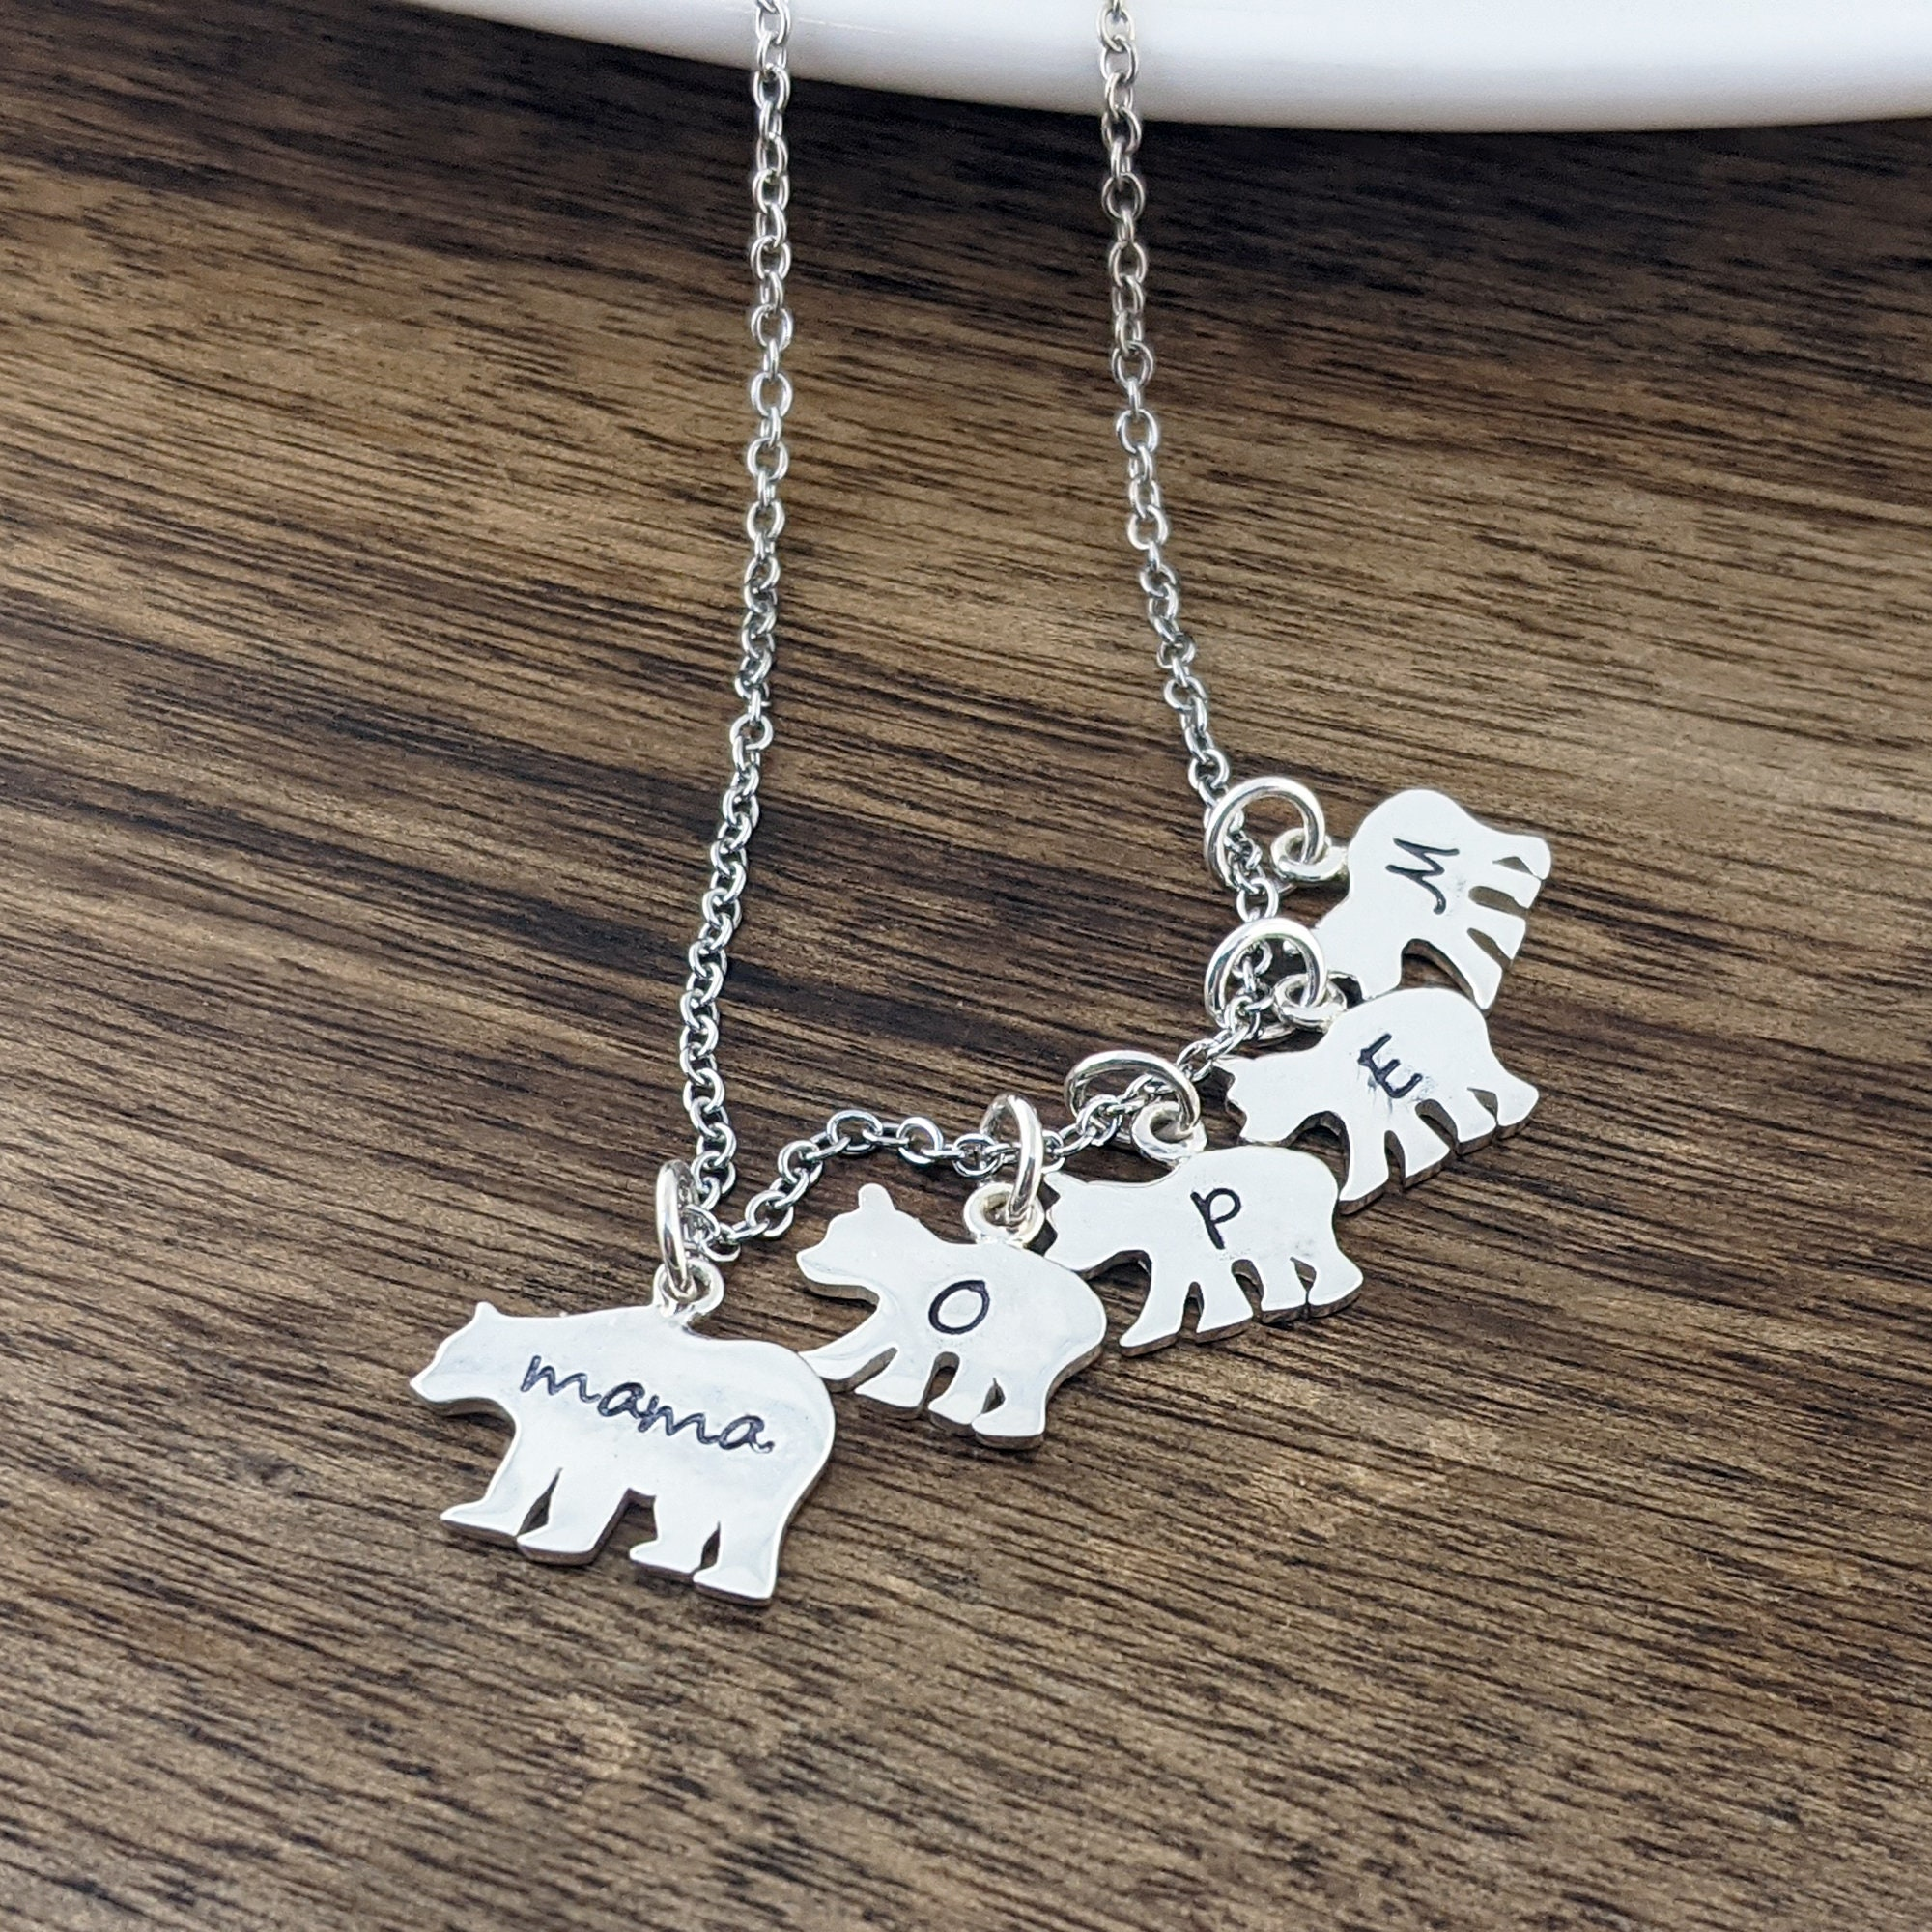 Mom Necklace Bear Cubs Necklace Bear Cub Jewelry Baby Bear Necklace Mama Bear Jewelry Daughter Gift Mothers Necklace